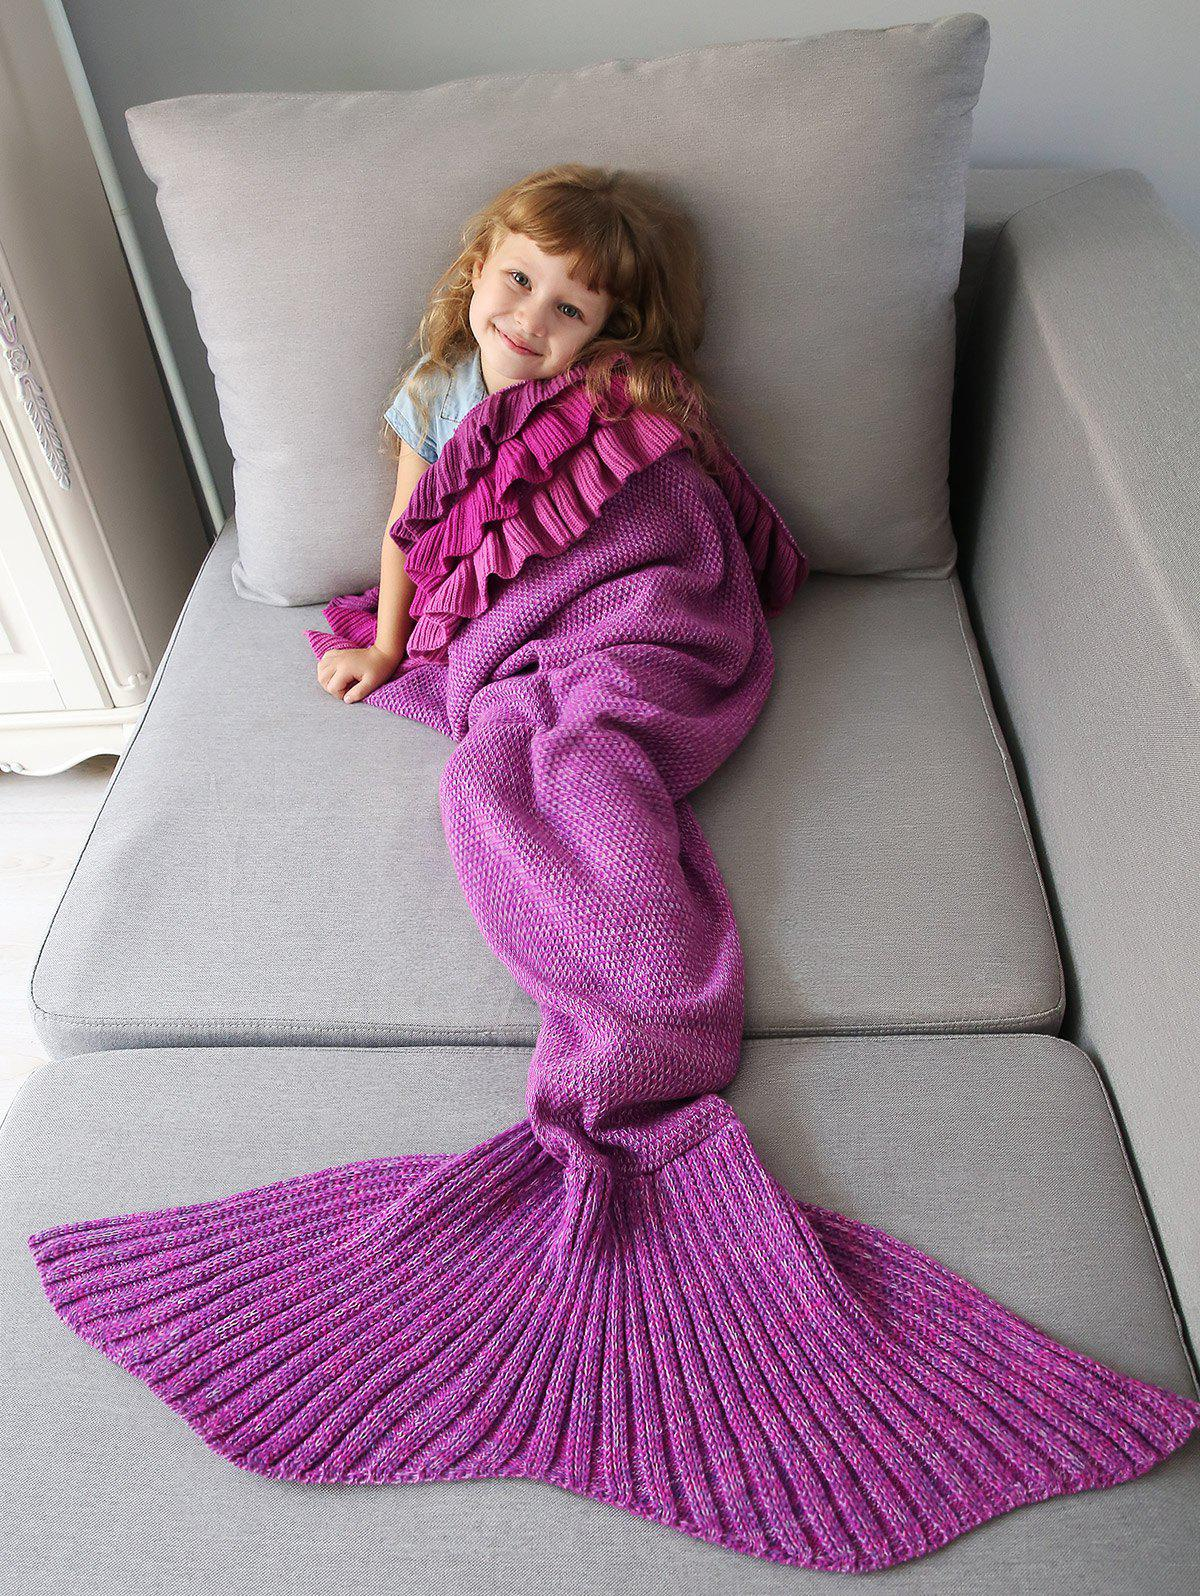 Affordable Home Decor Multilayered Ruffles Knit Mermaid Blanket Throw For Kids